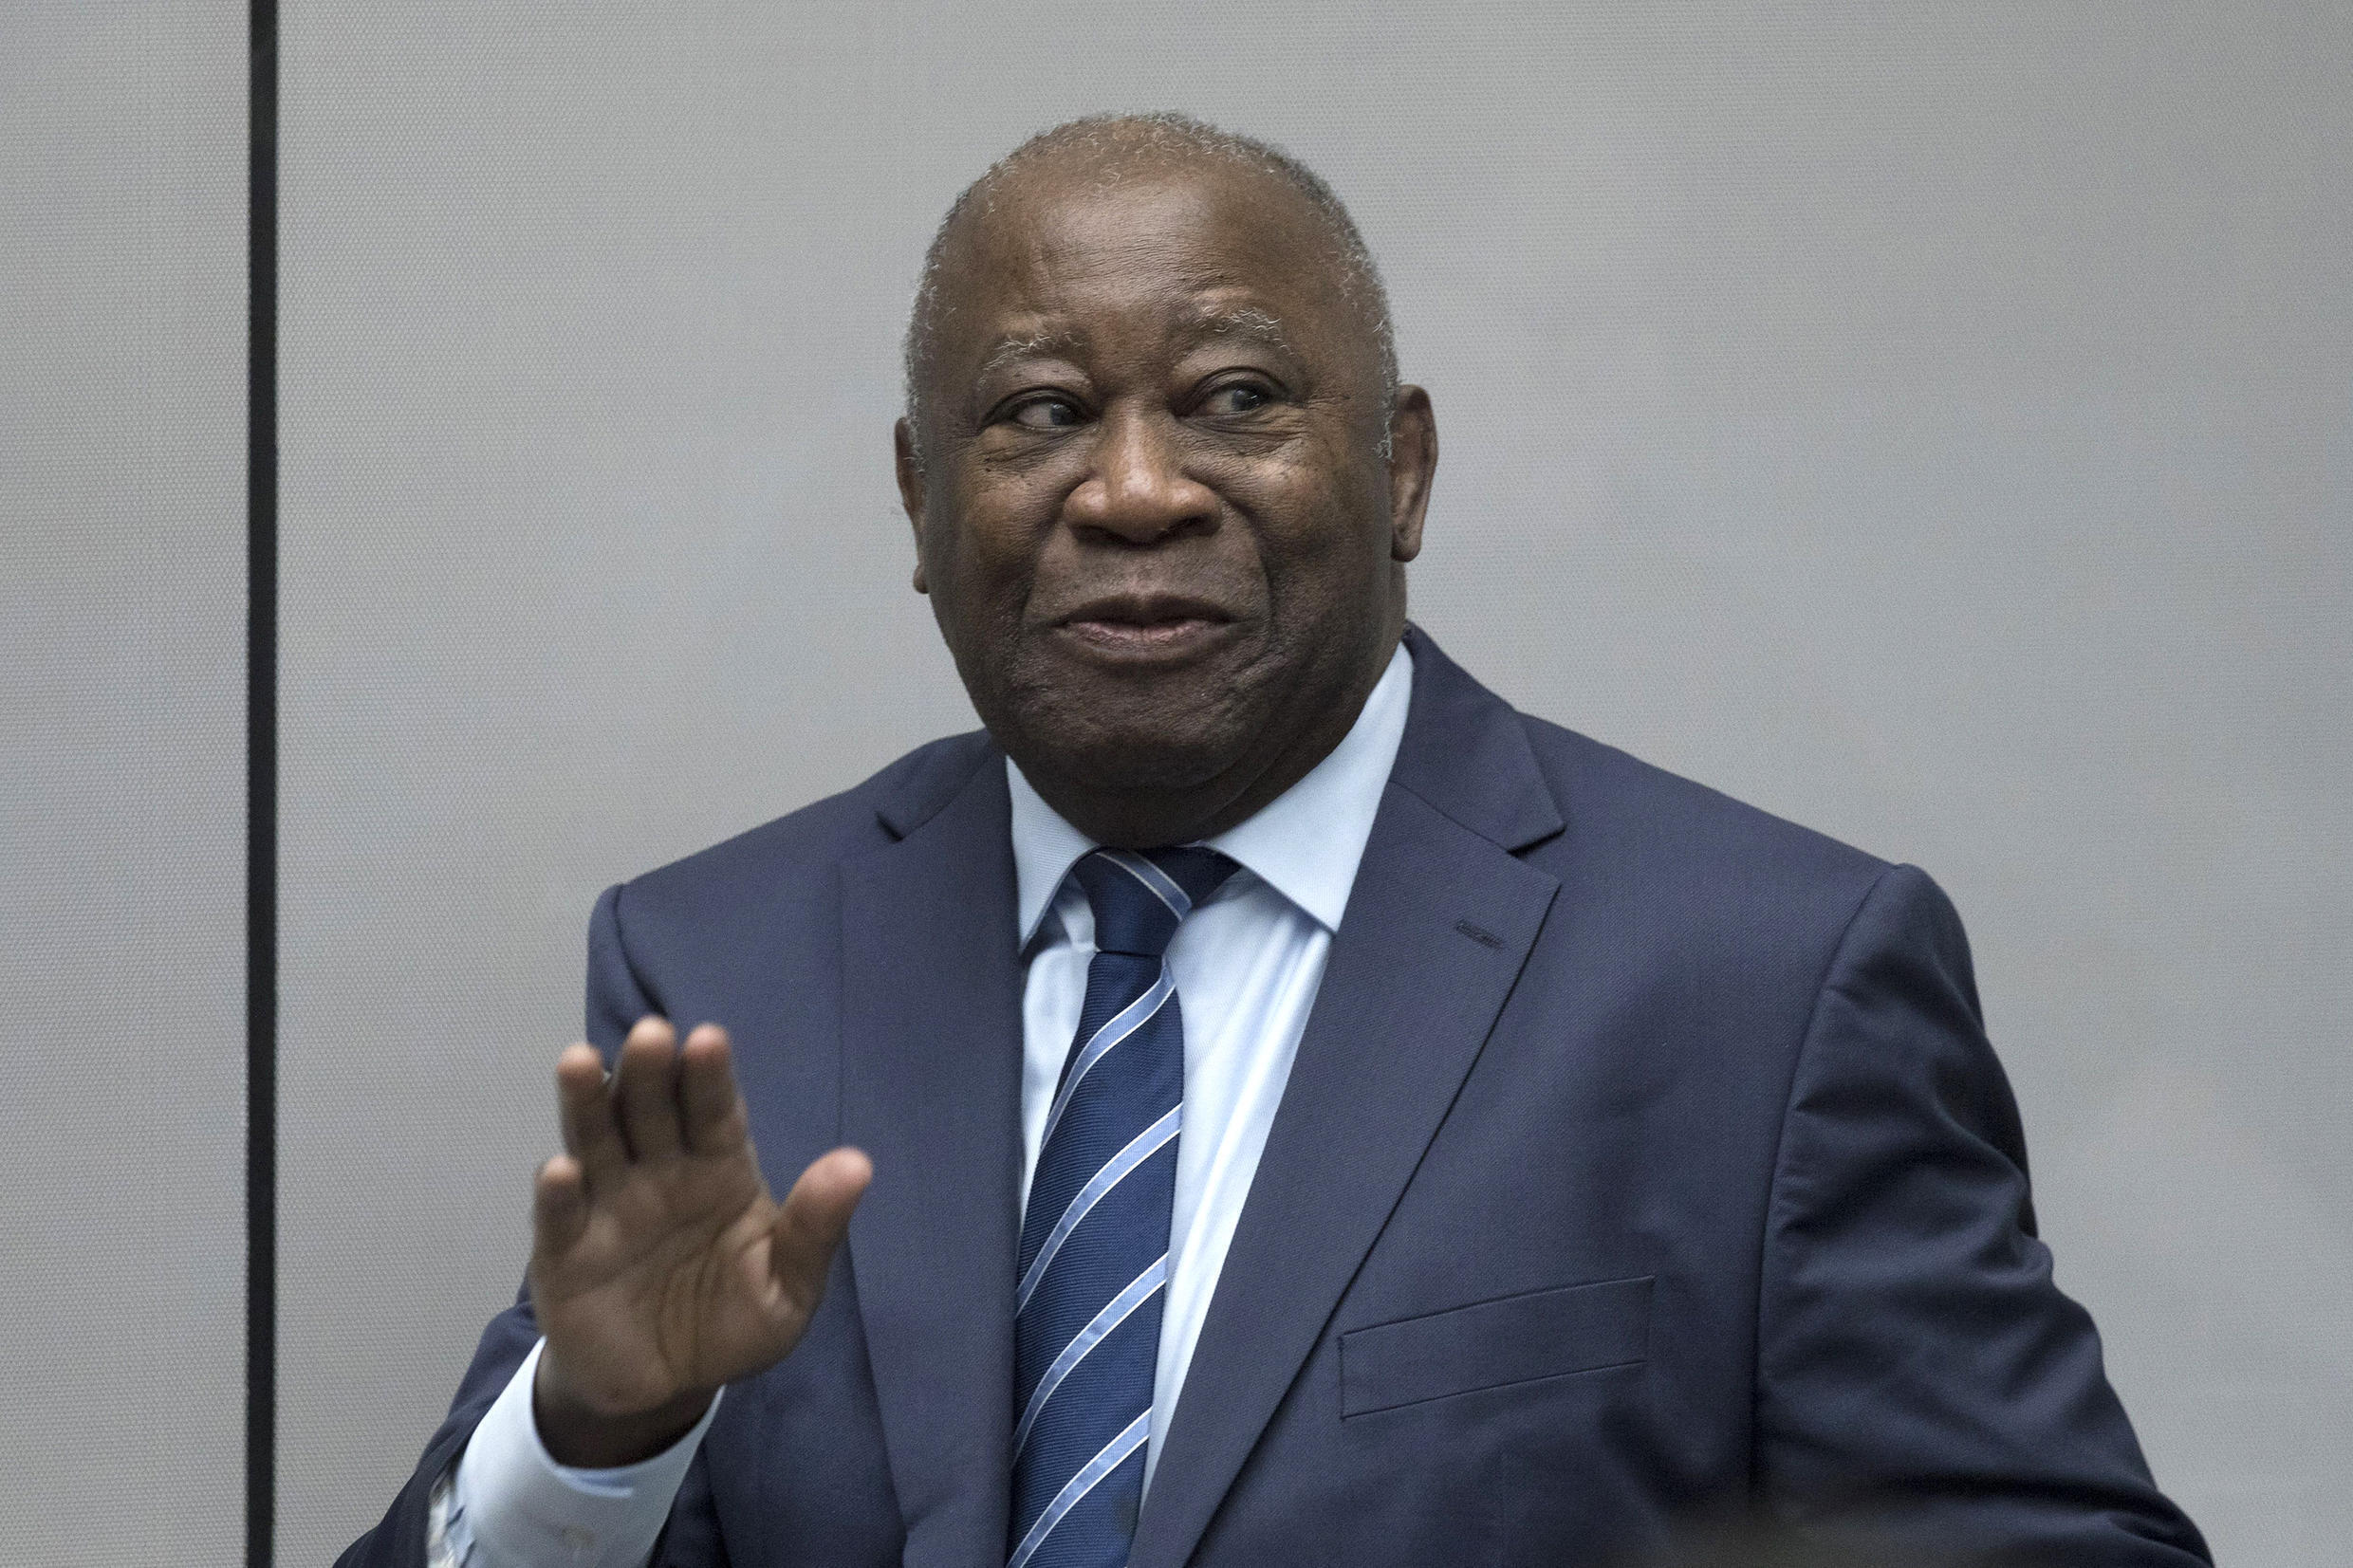 Former Ivory Coast President Laurent Gbagbo (pictured January 2019 in the courtroom of the International Criminal Court in The Hague) was cleared of crimes against humanity in 2019, eight years after the former West African strongman's arrest